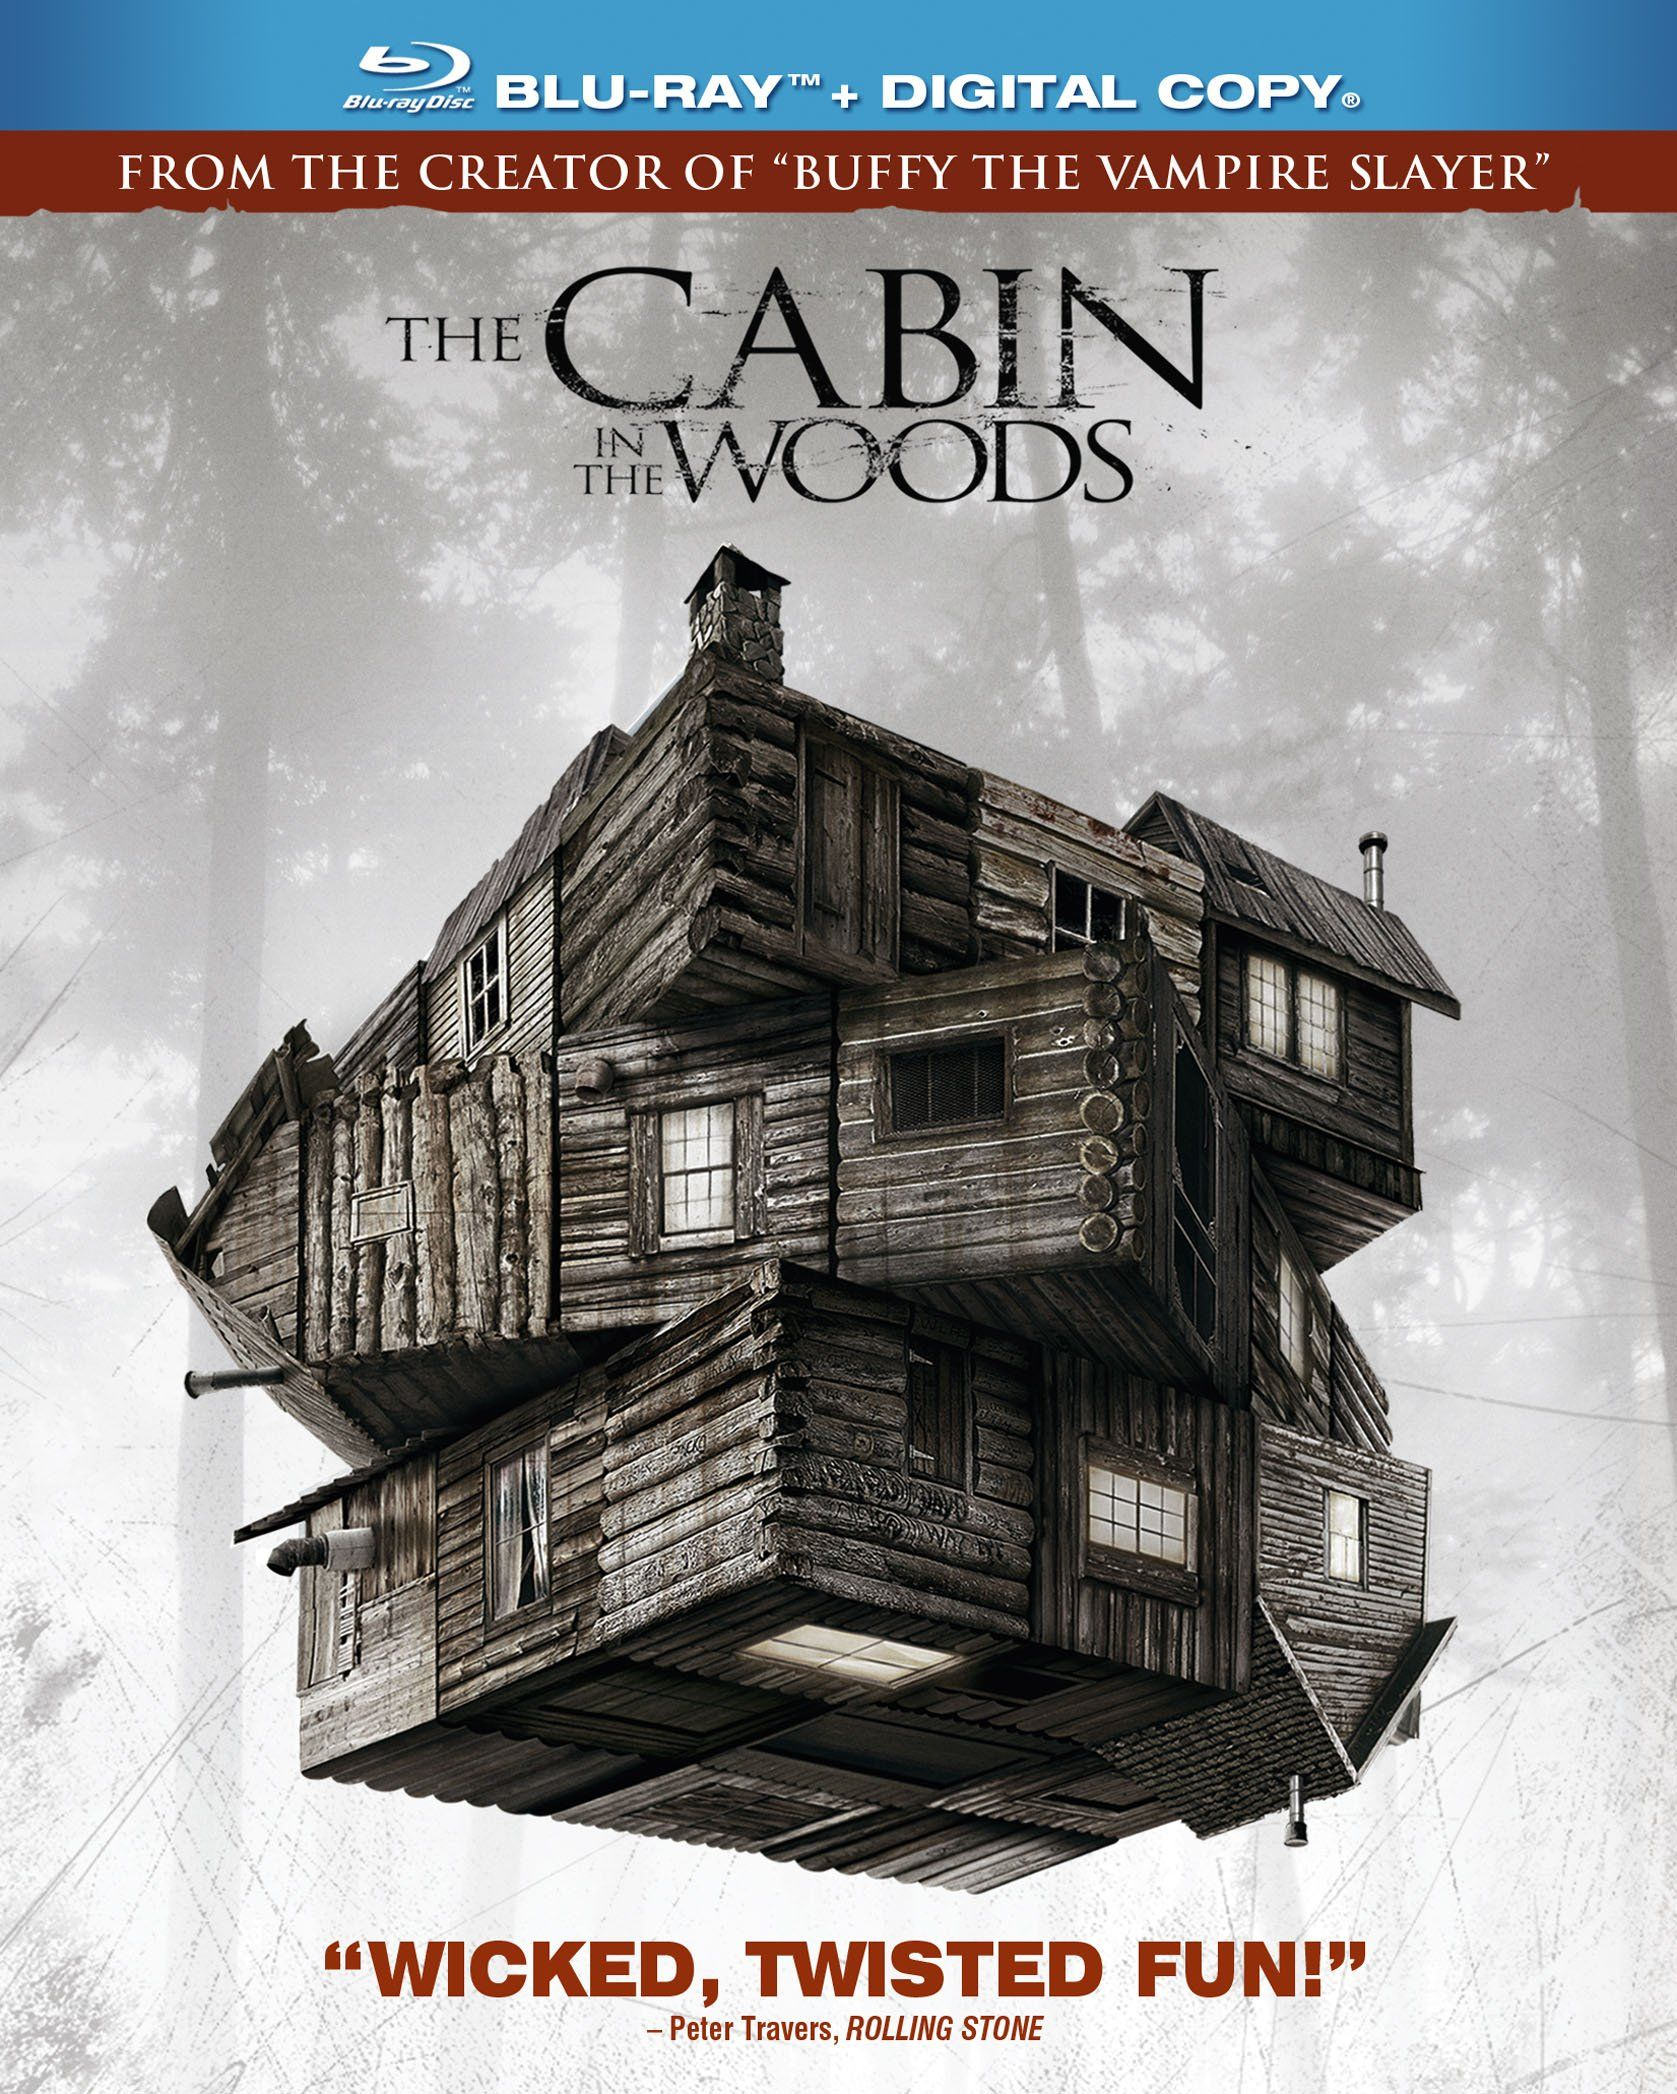 new blu rays for indiana jones the complete collection the cabin in the woods the game. Black Bedroom Furniture Sets. Home Design Ideas